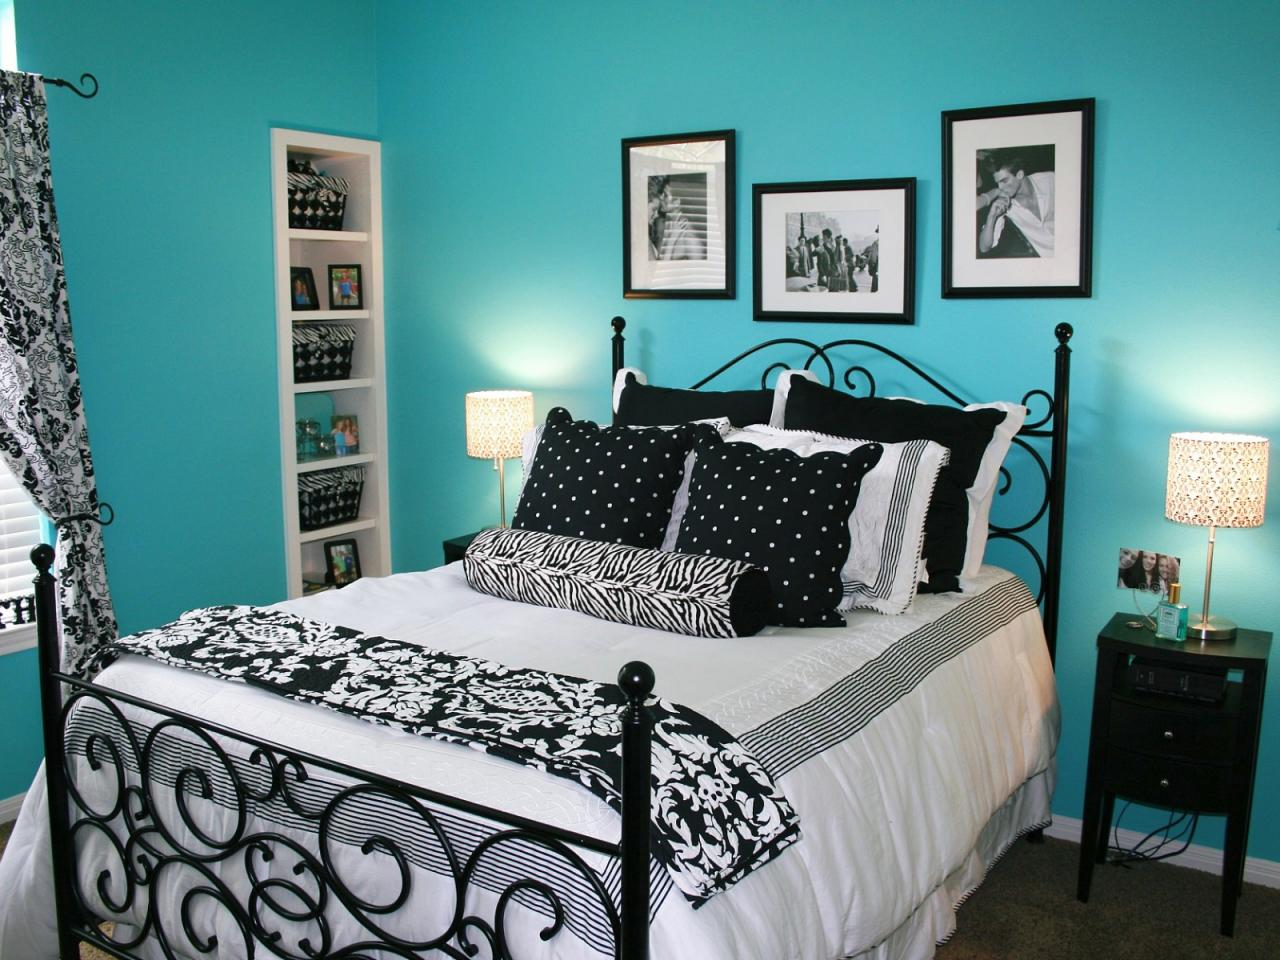 Colorful teen bedrooms kids room ideas for playroom Blue teenage bedroom